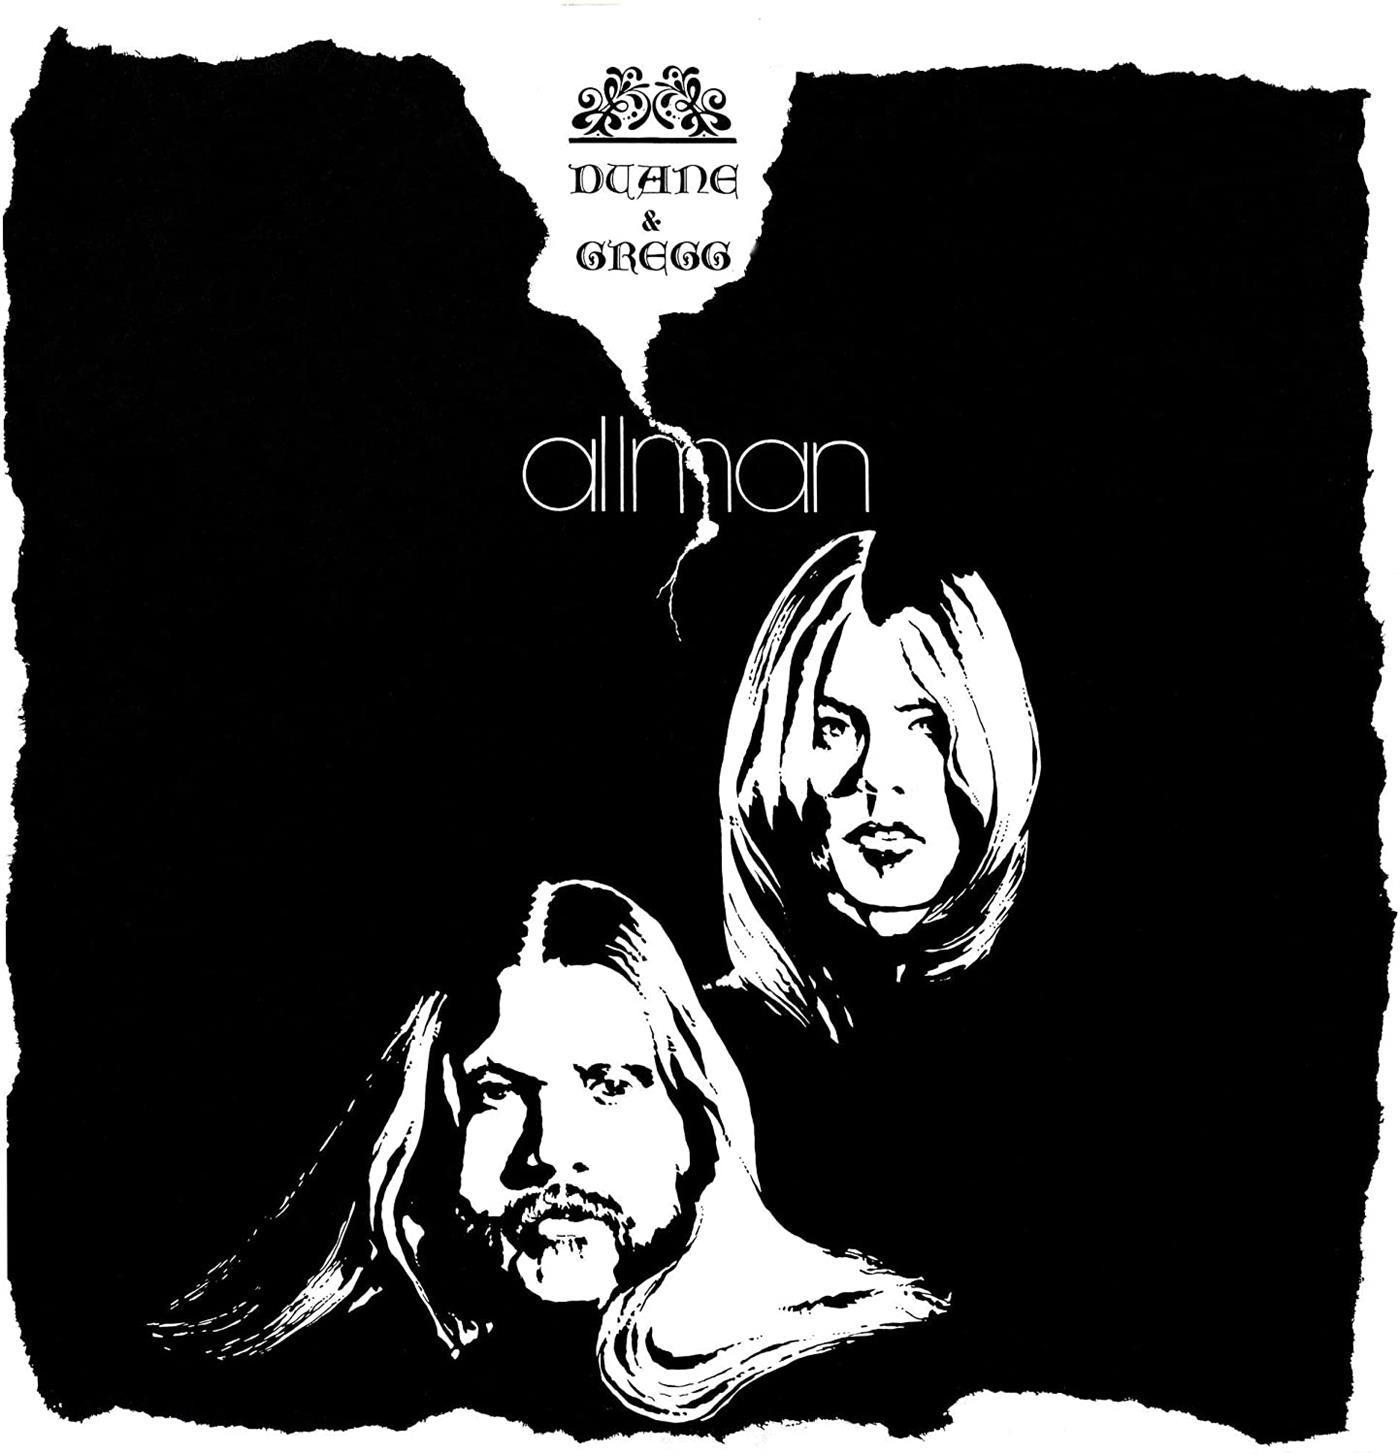 ABBR8.1 Allman Brothers Band Recording Company  Duane & Gregg Allman Duane & Gregg Allman (2LP)